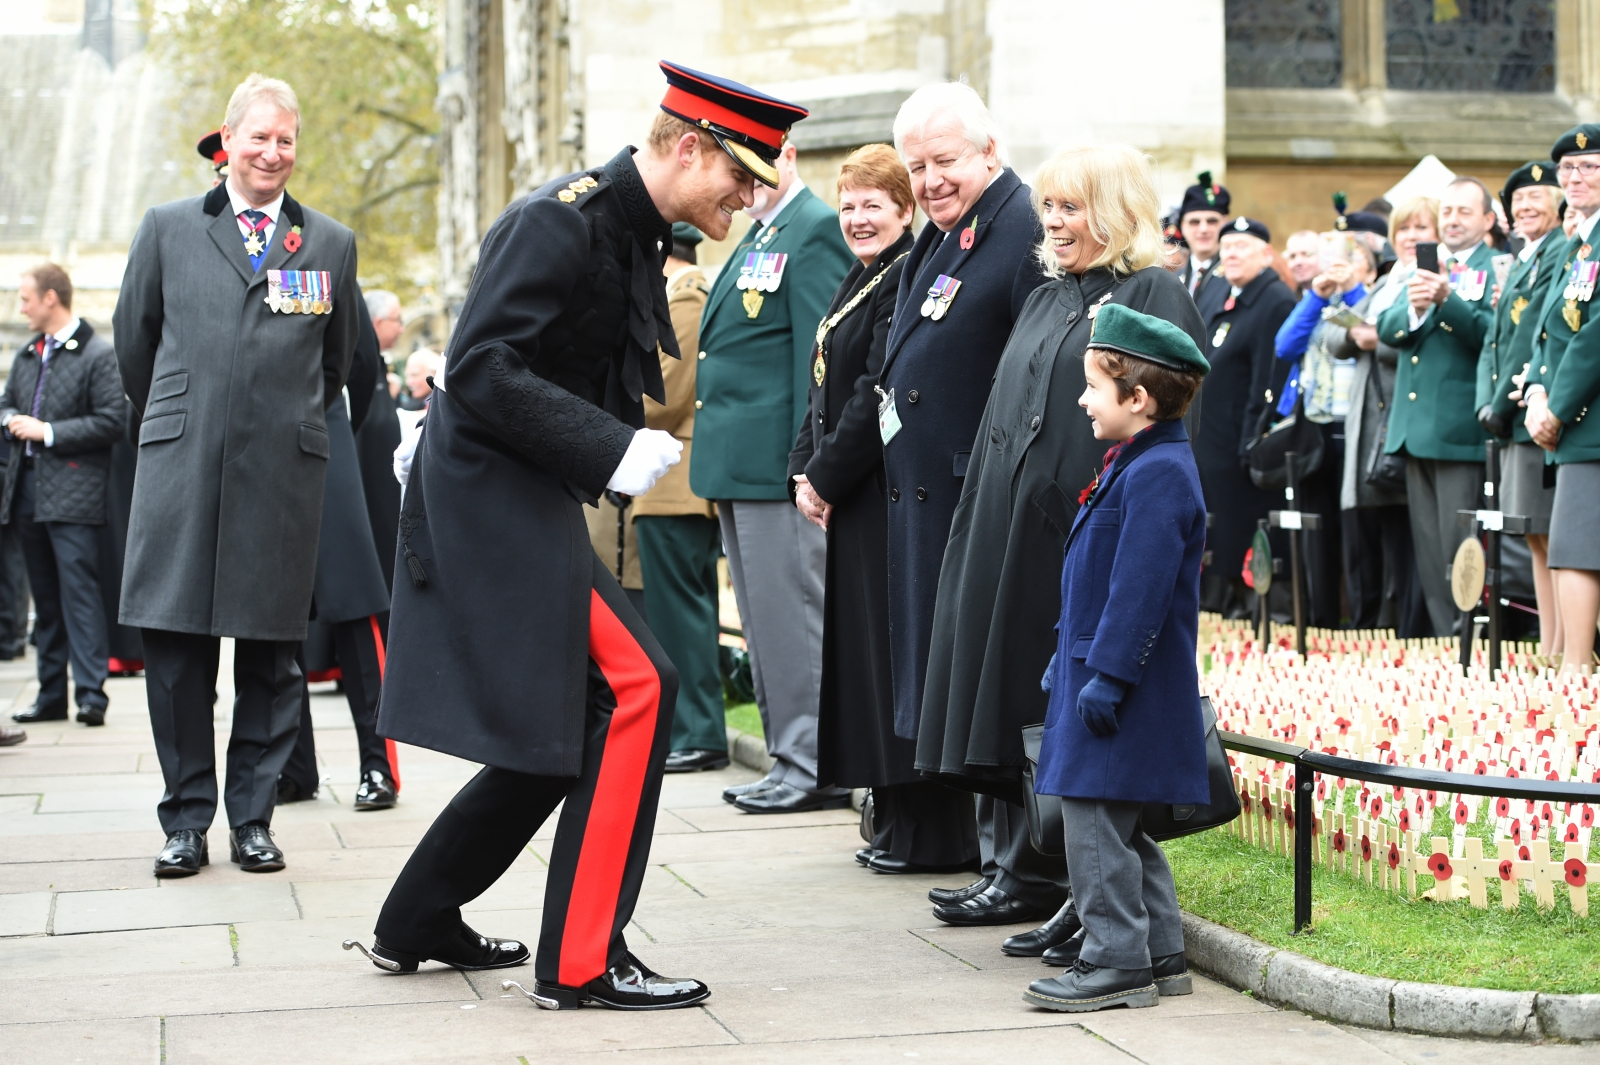 Prince Harry joking with a child